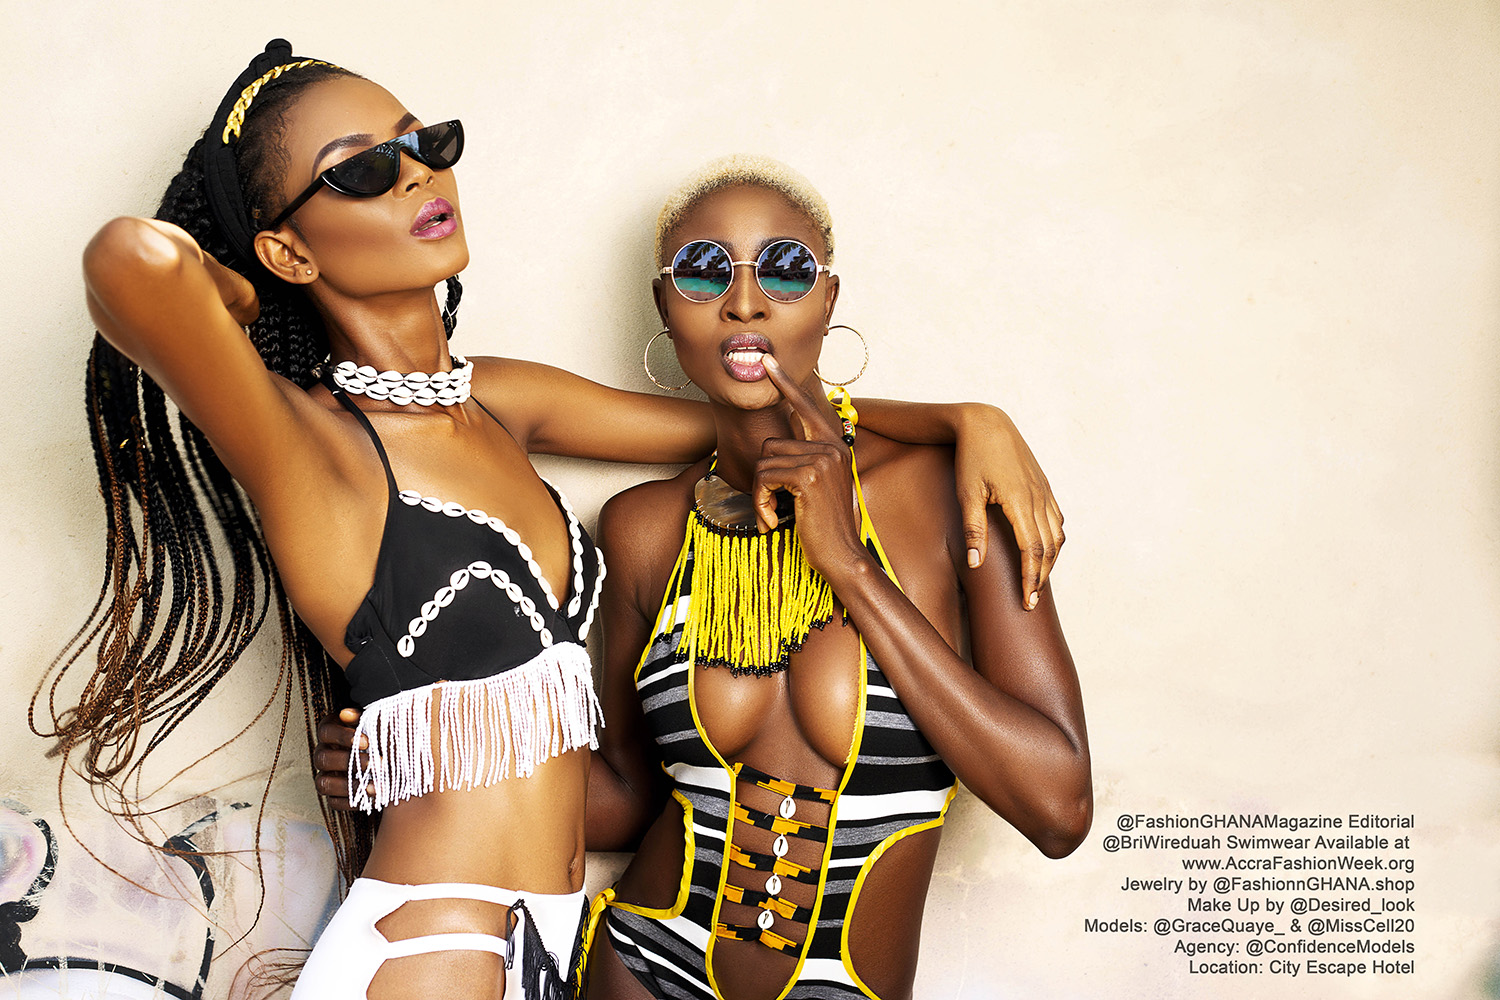 This Bri Wireduah Swimwear Editorial Will Send You Straight To The Gym!